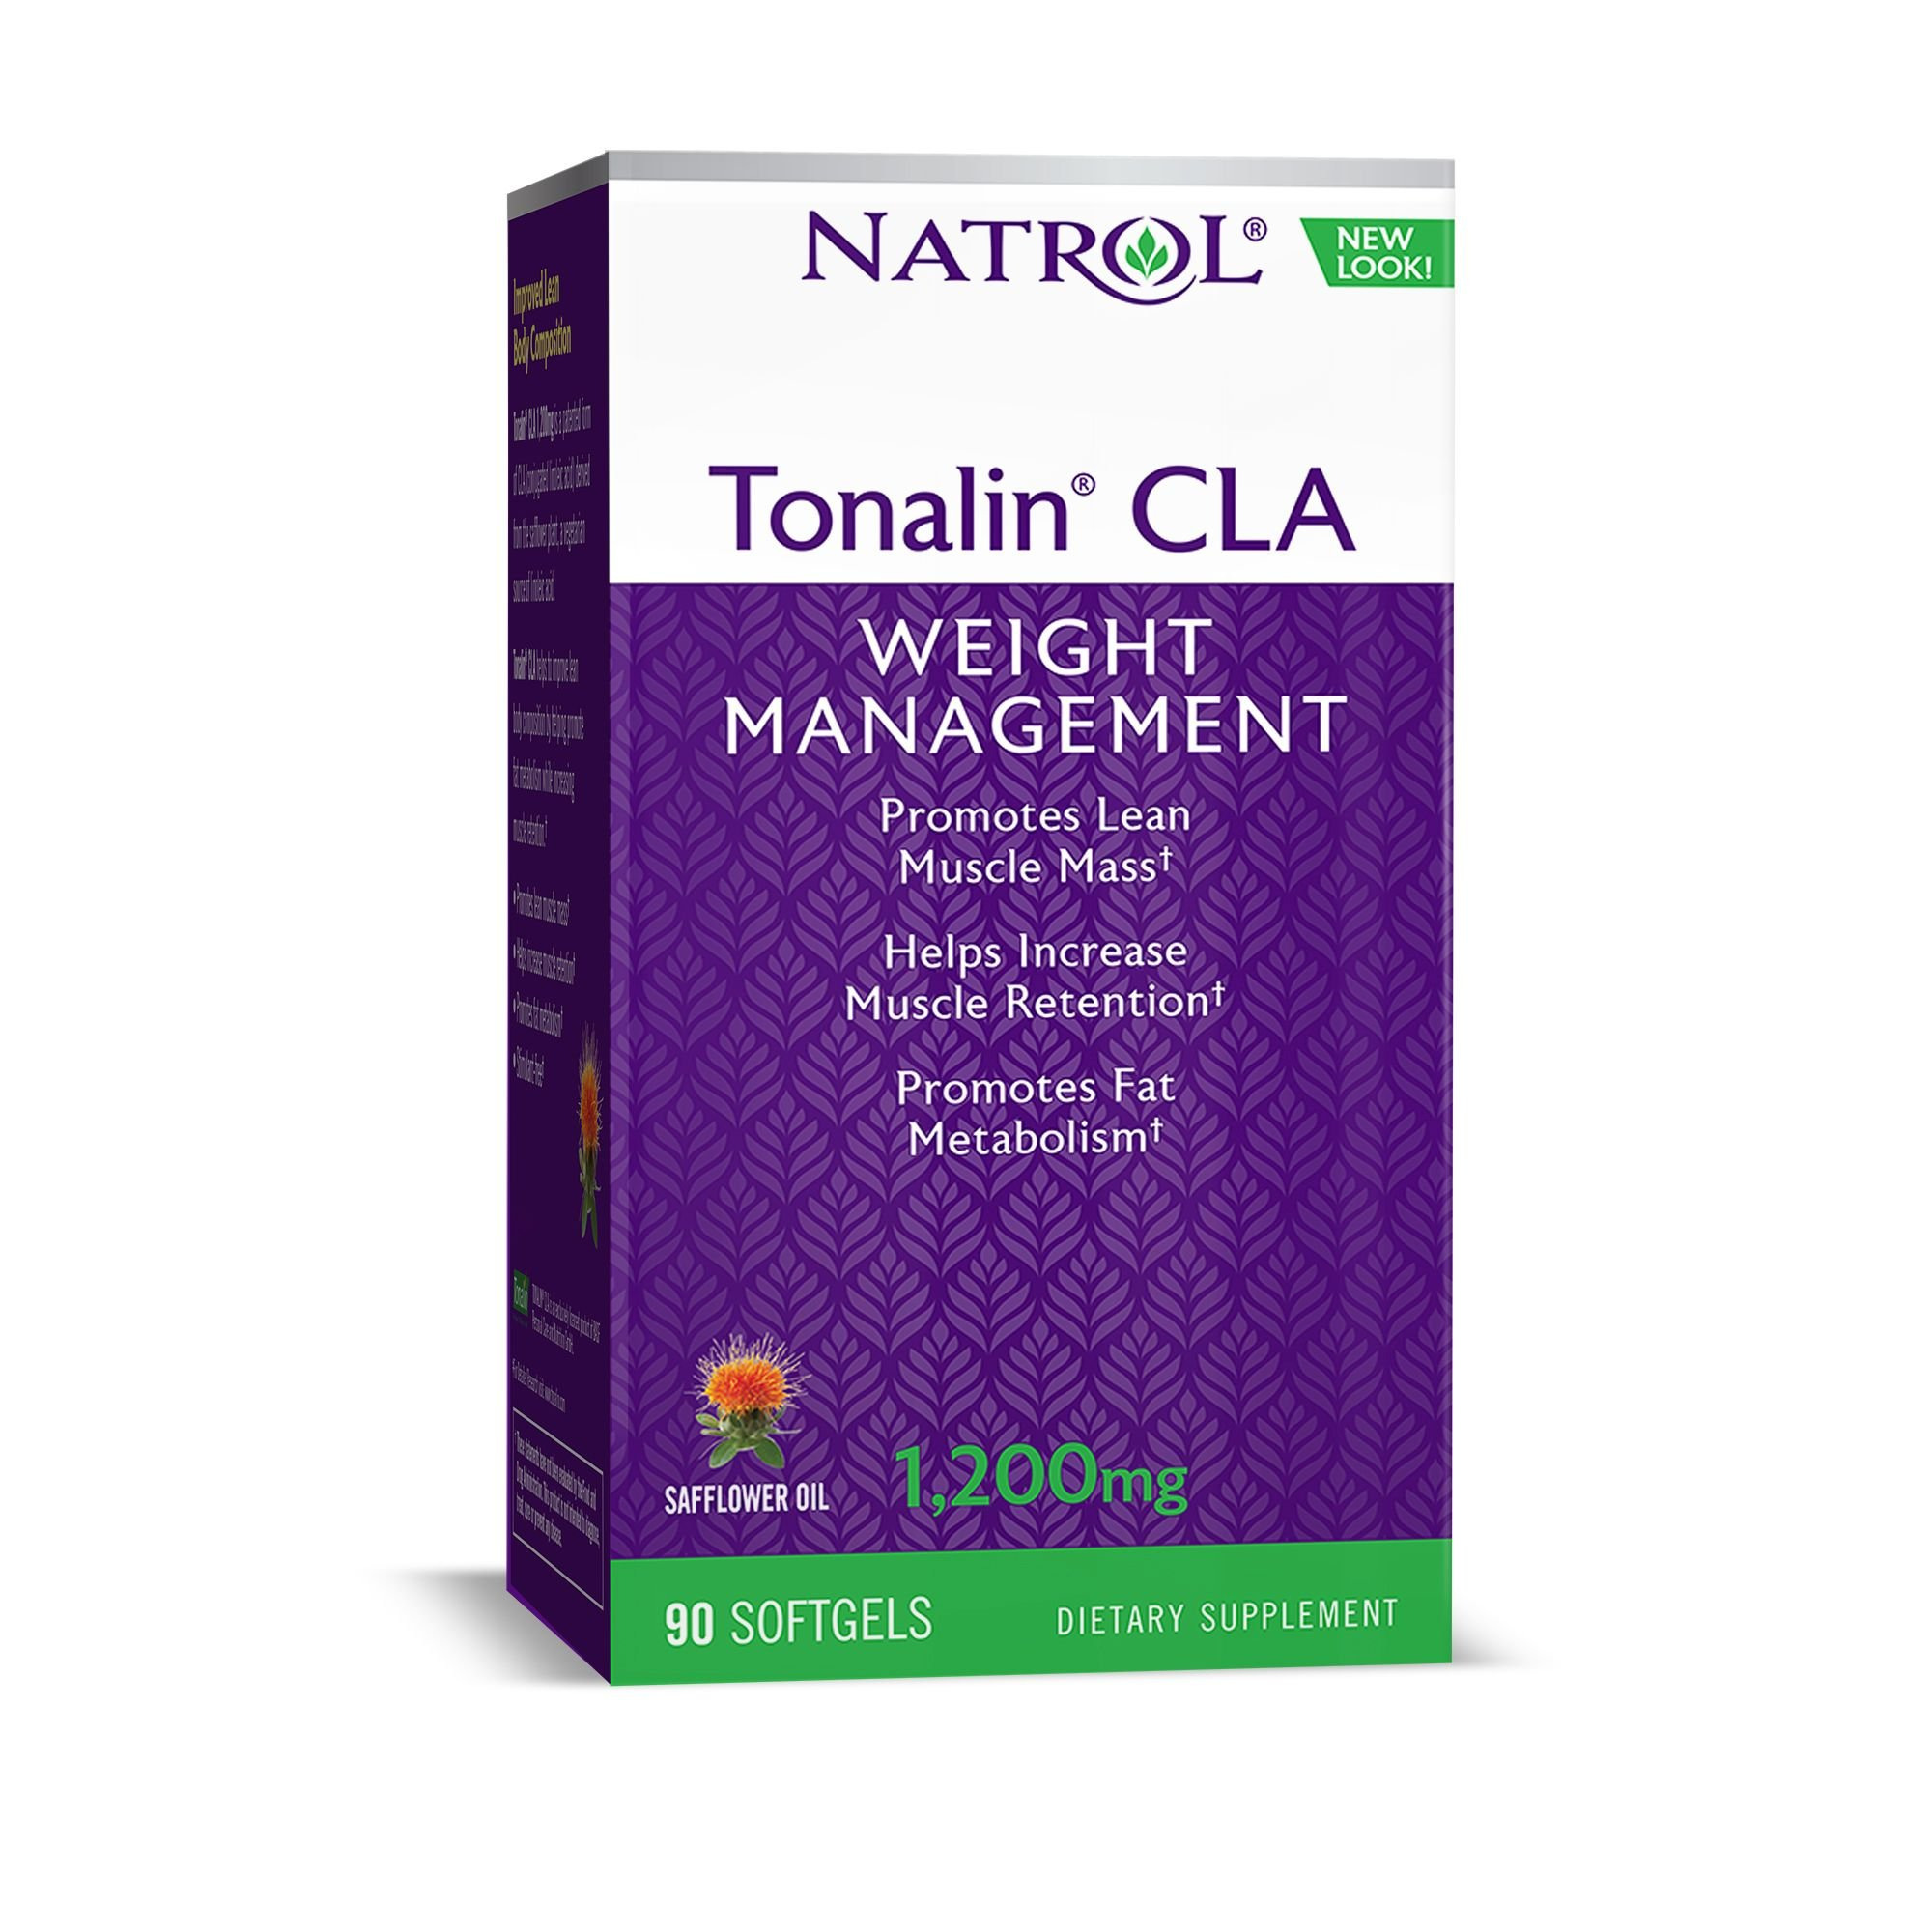 Natrol Tonalin CLA 1200mg Softgels, 90-Count